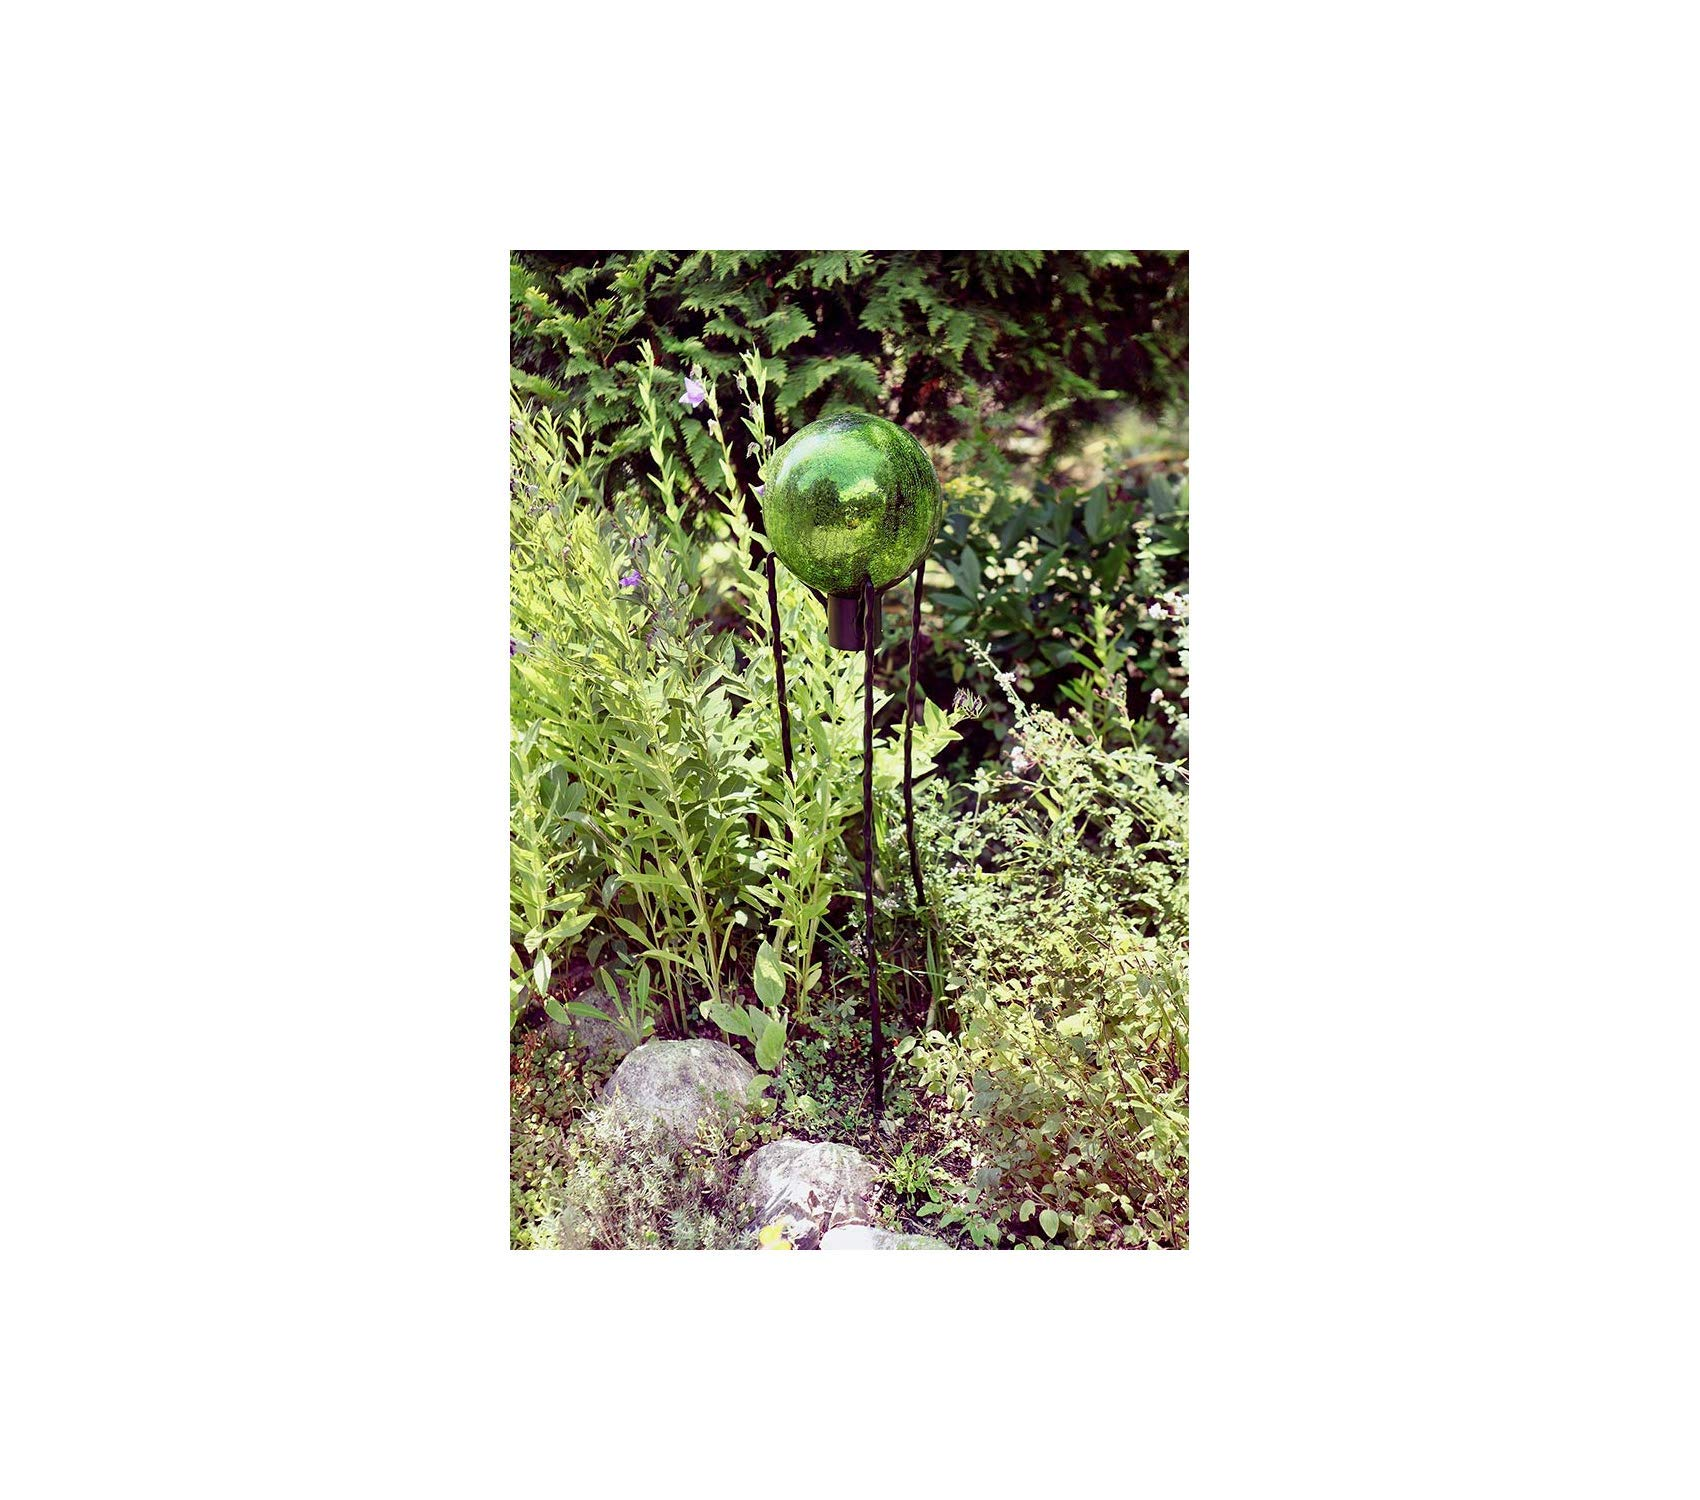 Аchlа Outdoor Garden Backyard Décor Designs Gazing Globe Ball Stand, 31-Inch H Spiked by Аchlа (Image #3)